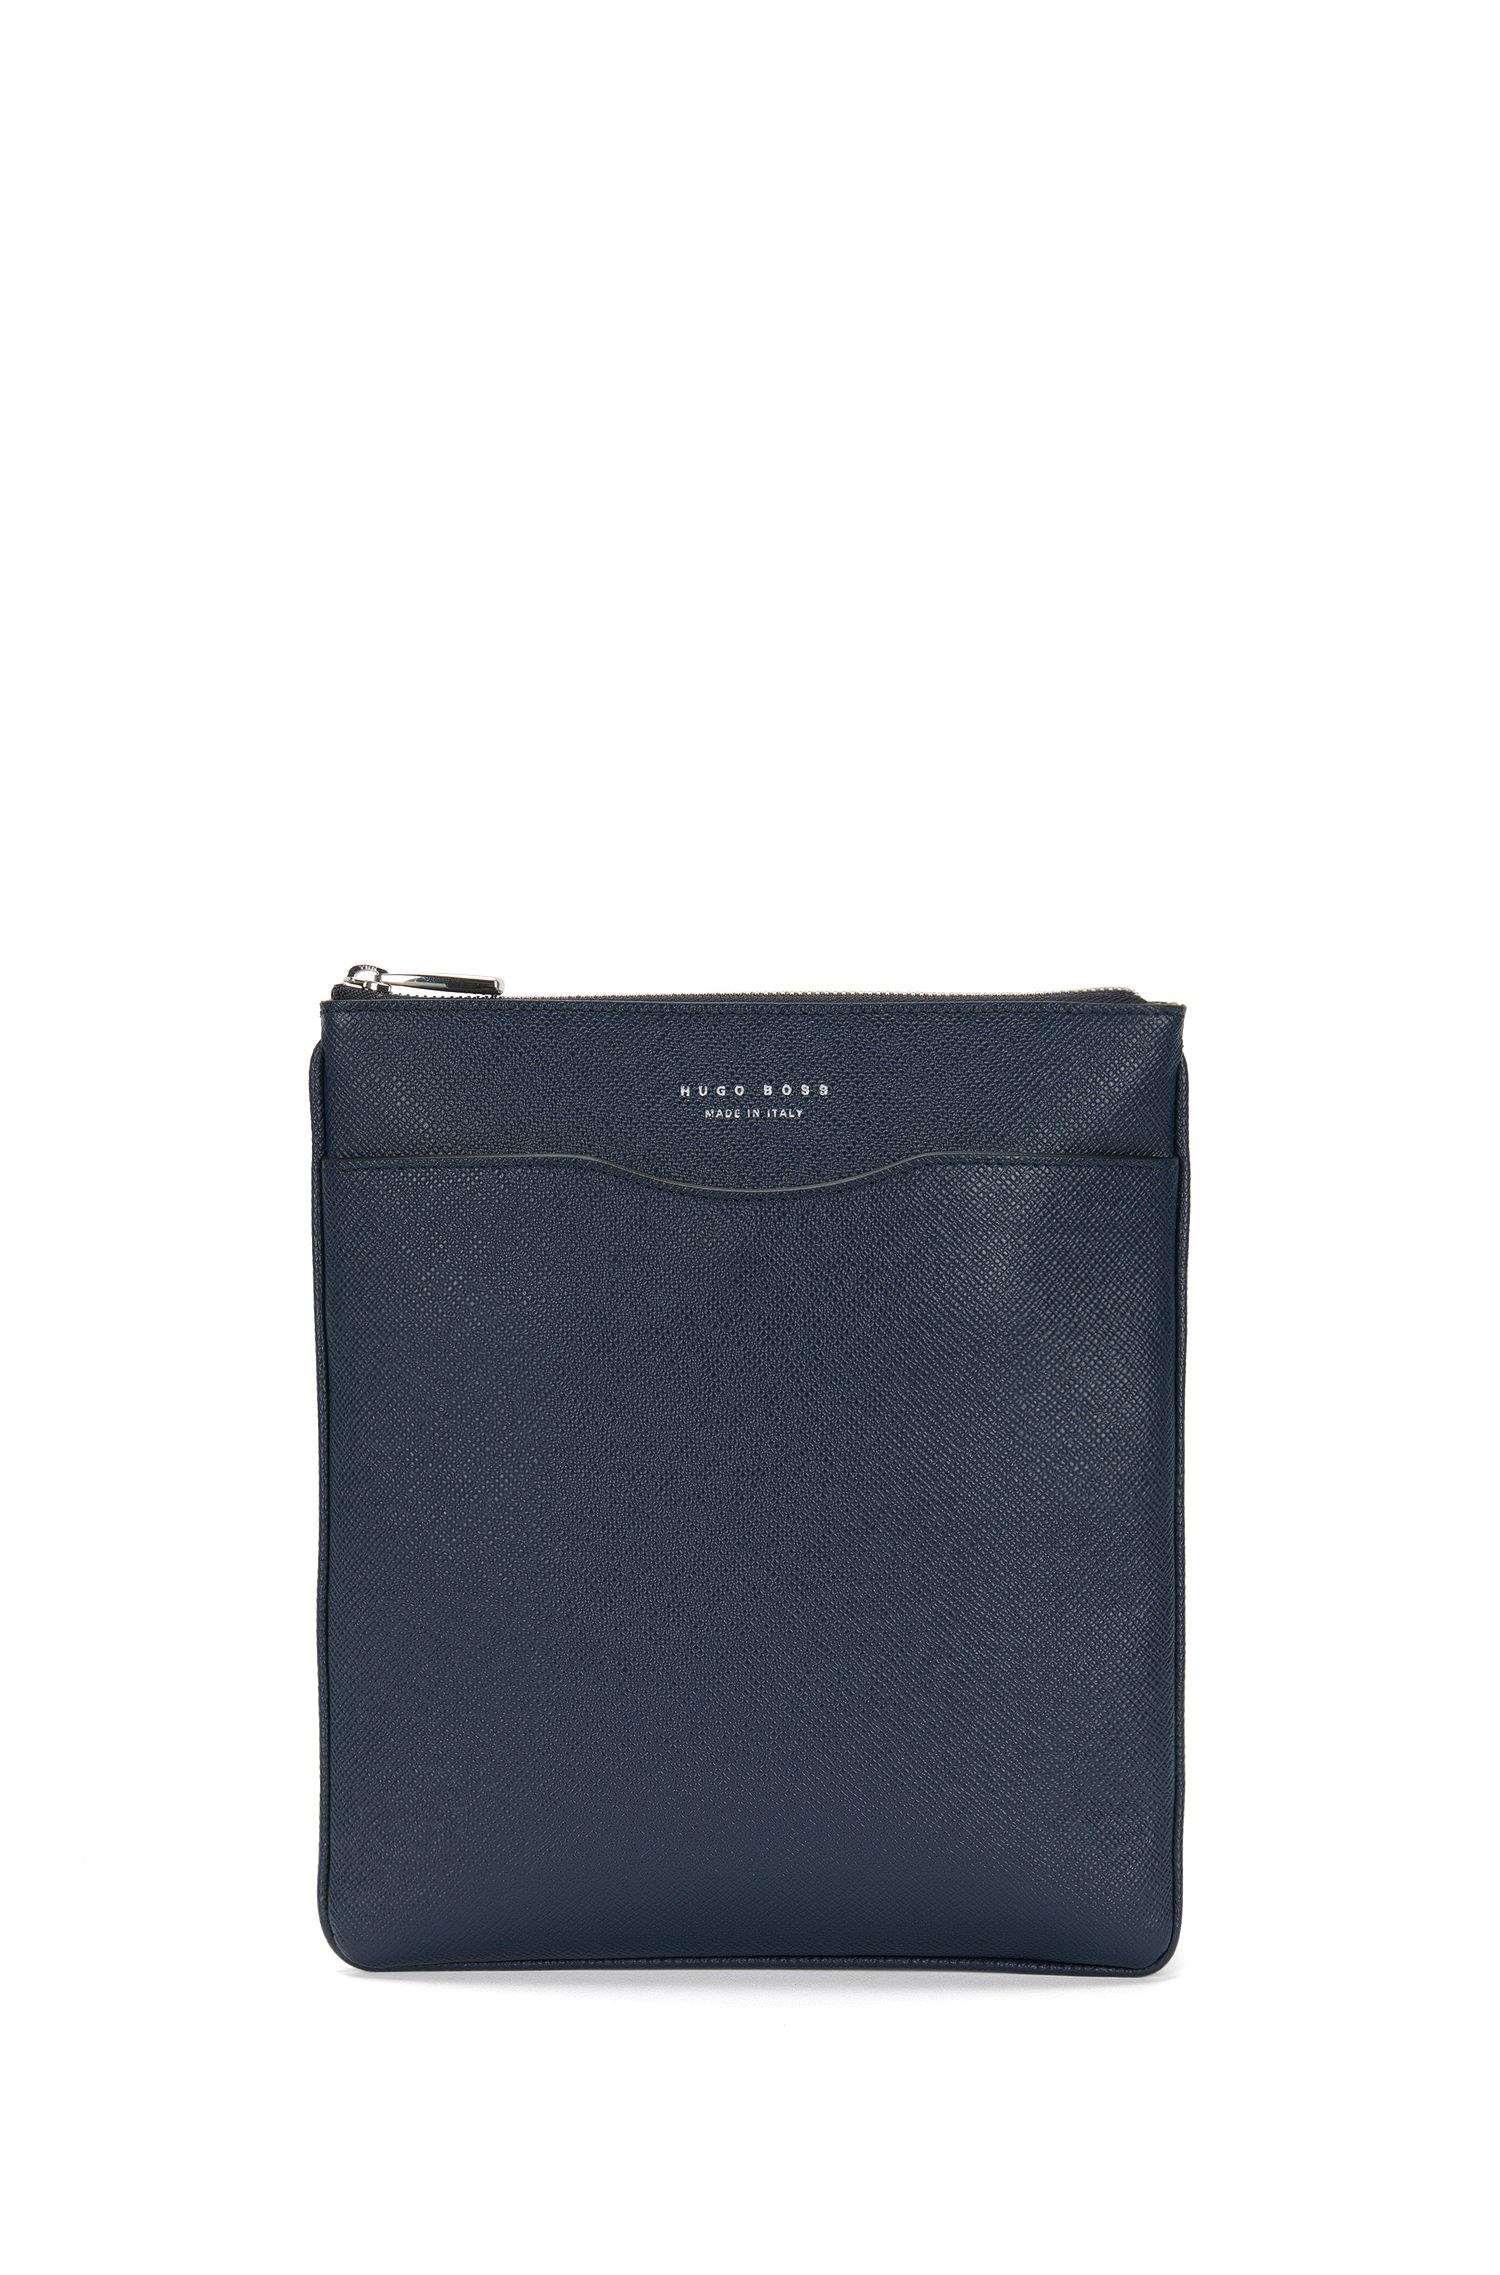 Crossbody-enveloptas van palmellatoleer uit de Signature Collection